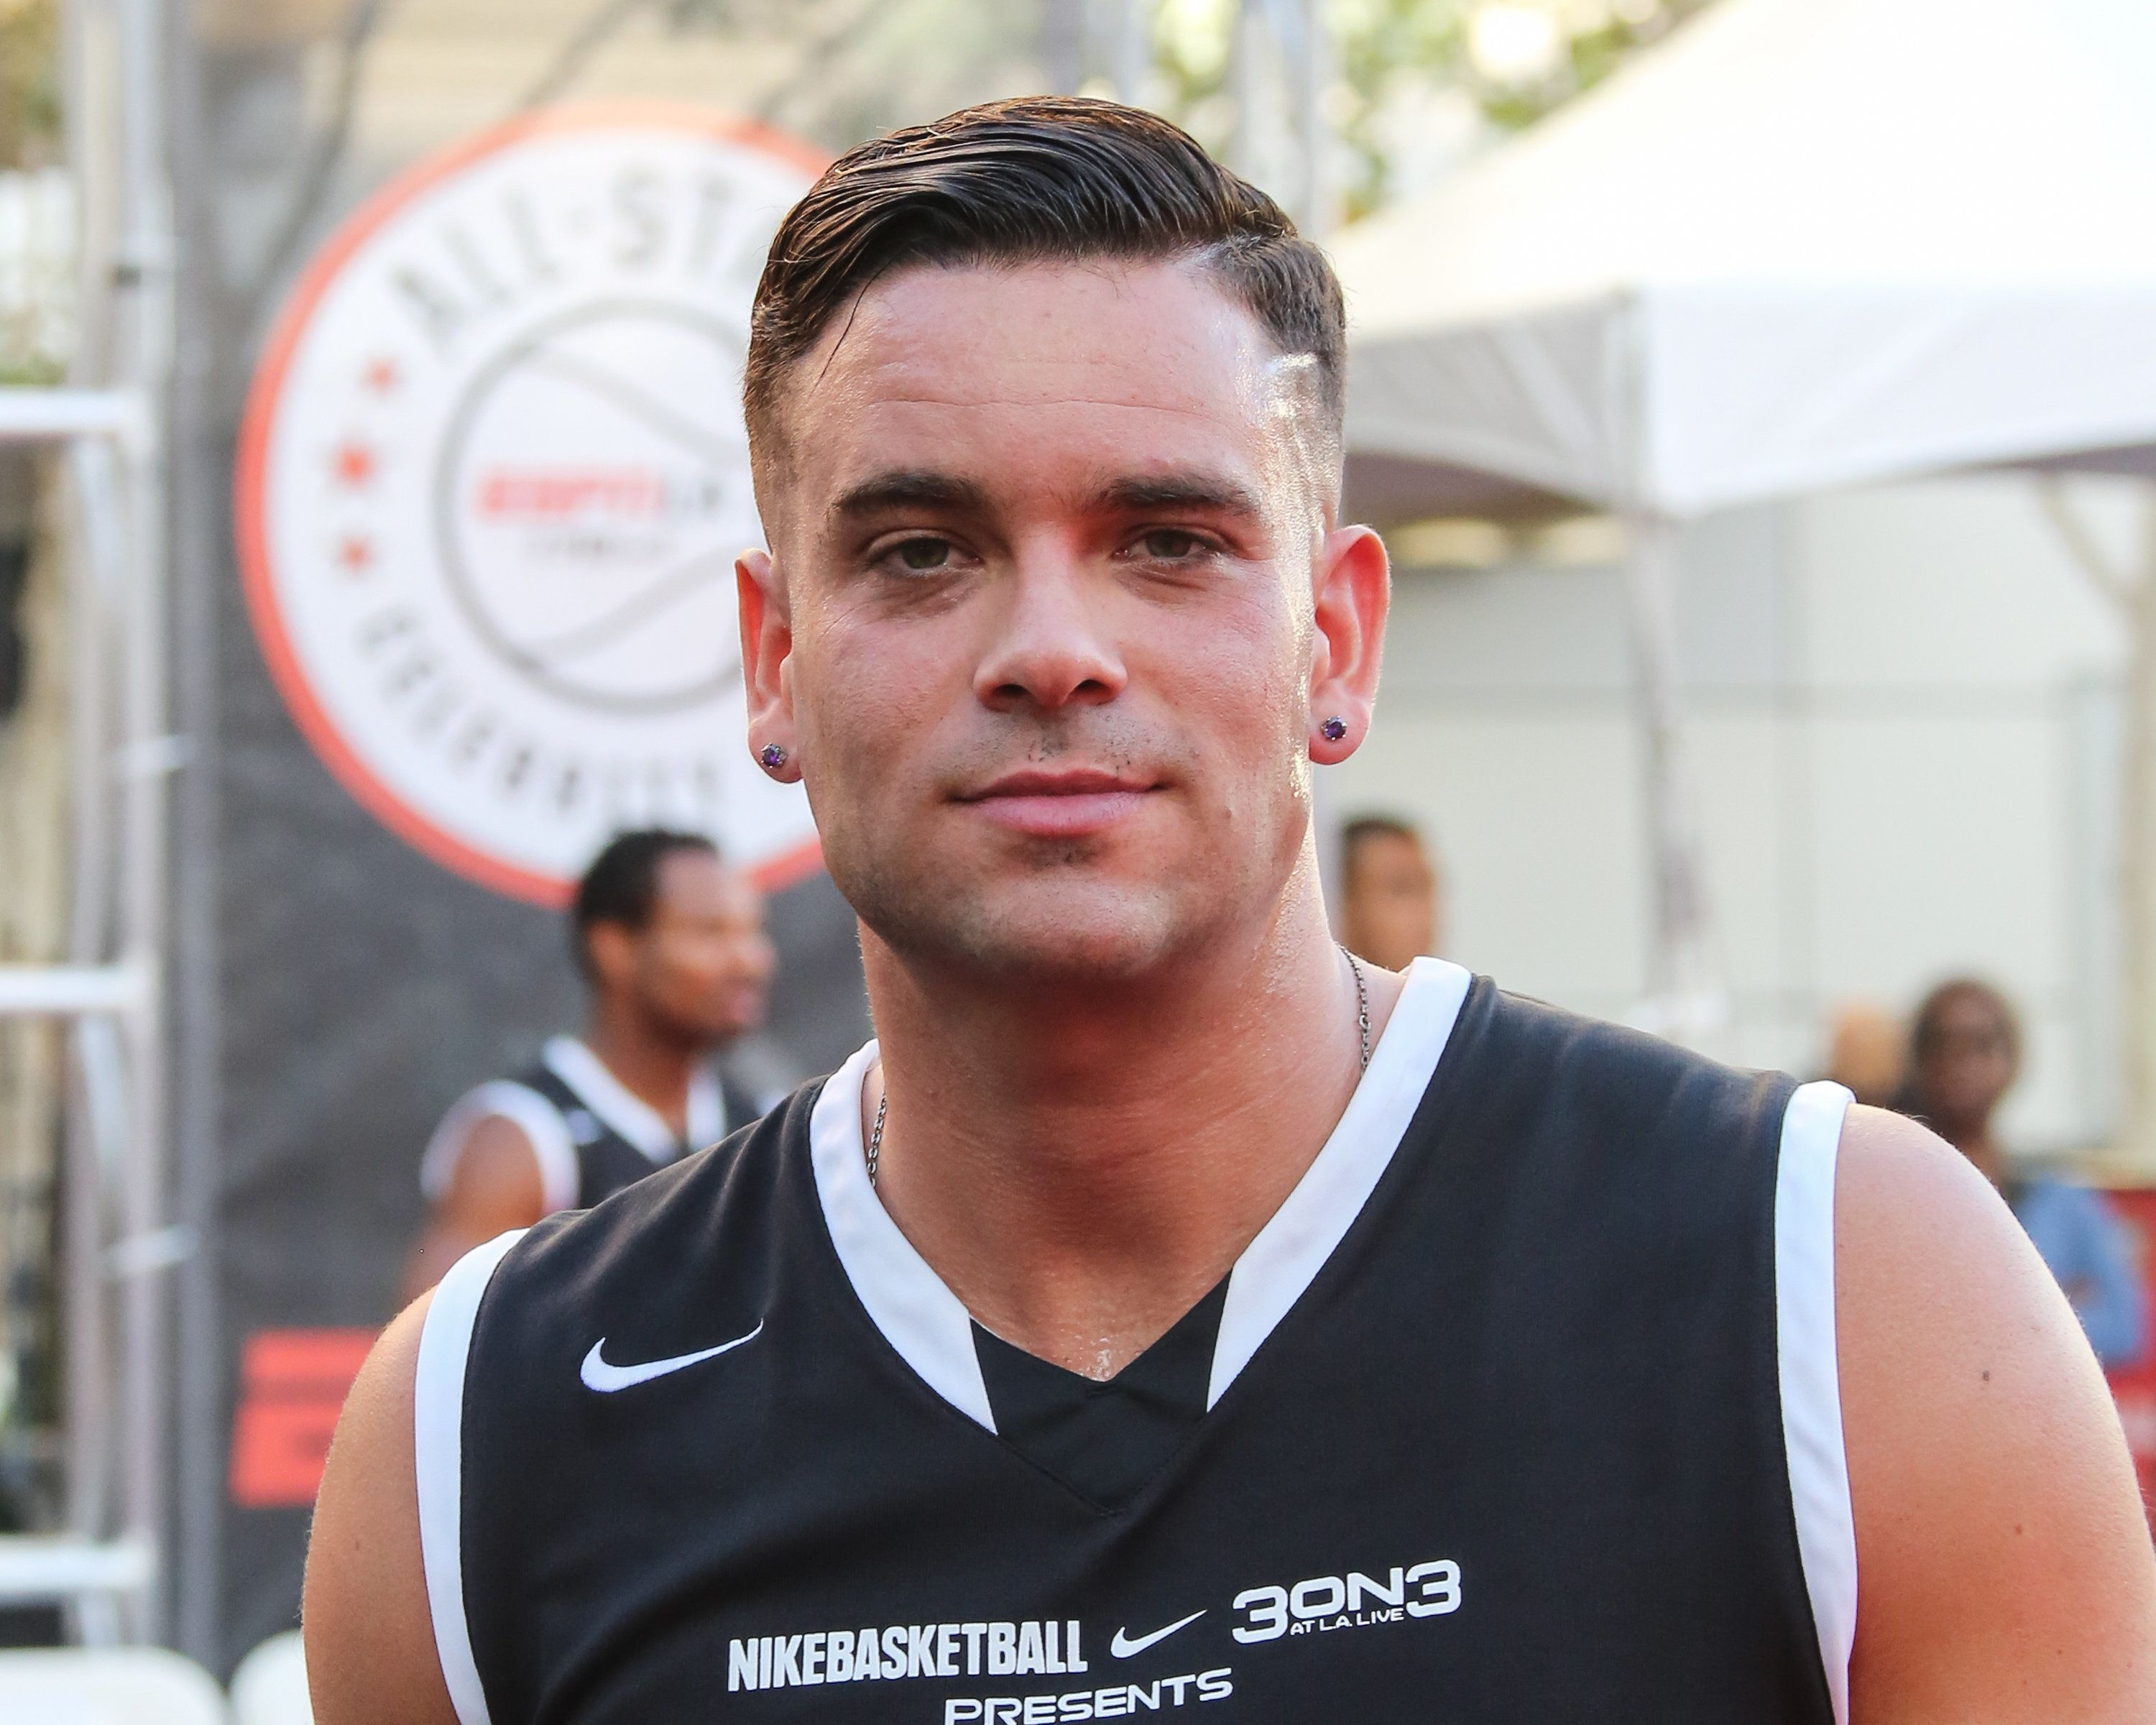 Former 'Glee' Star Mark Salling Dies Awaiting Child Porn